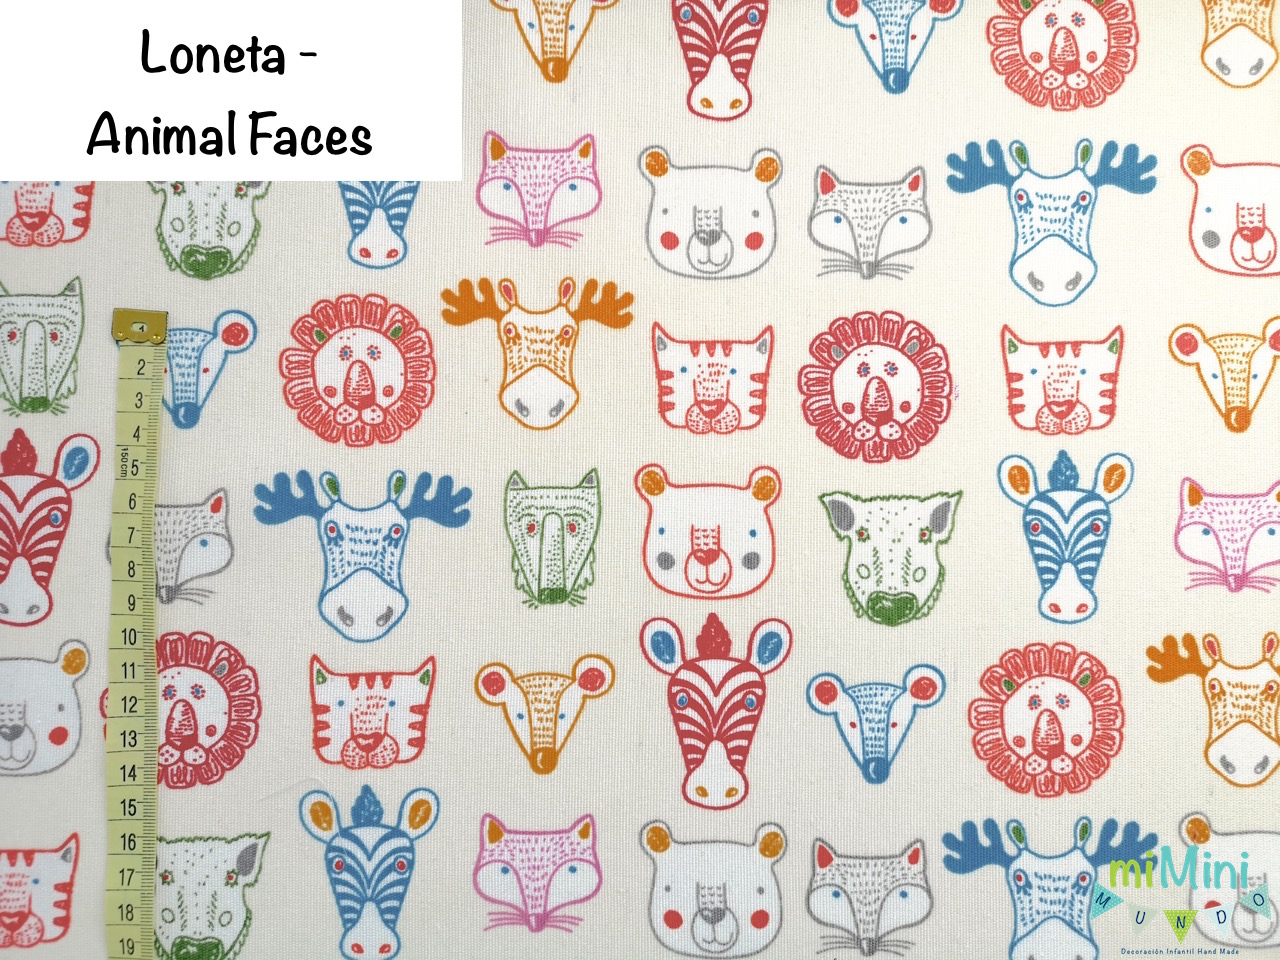 Loneta - Animal Faces